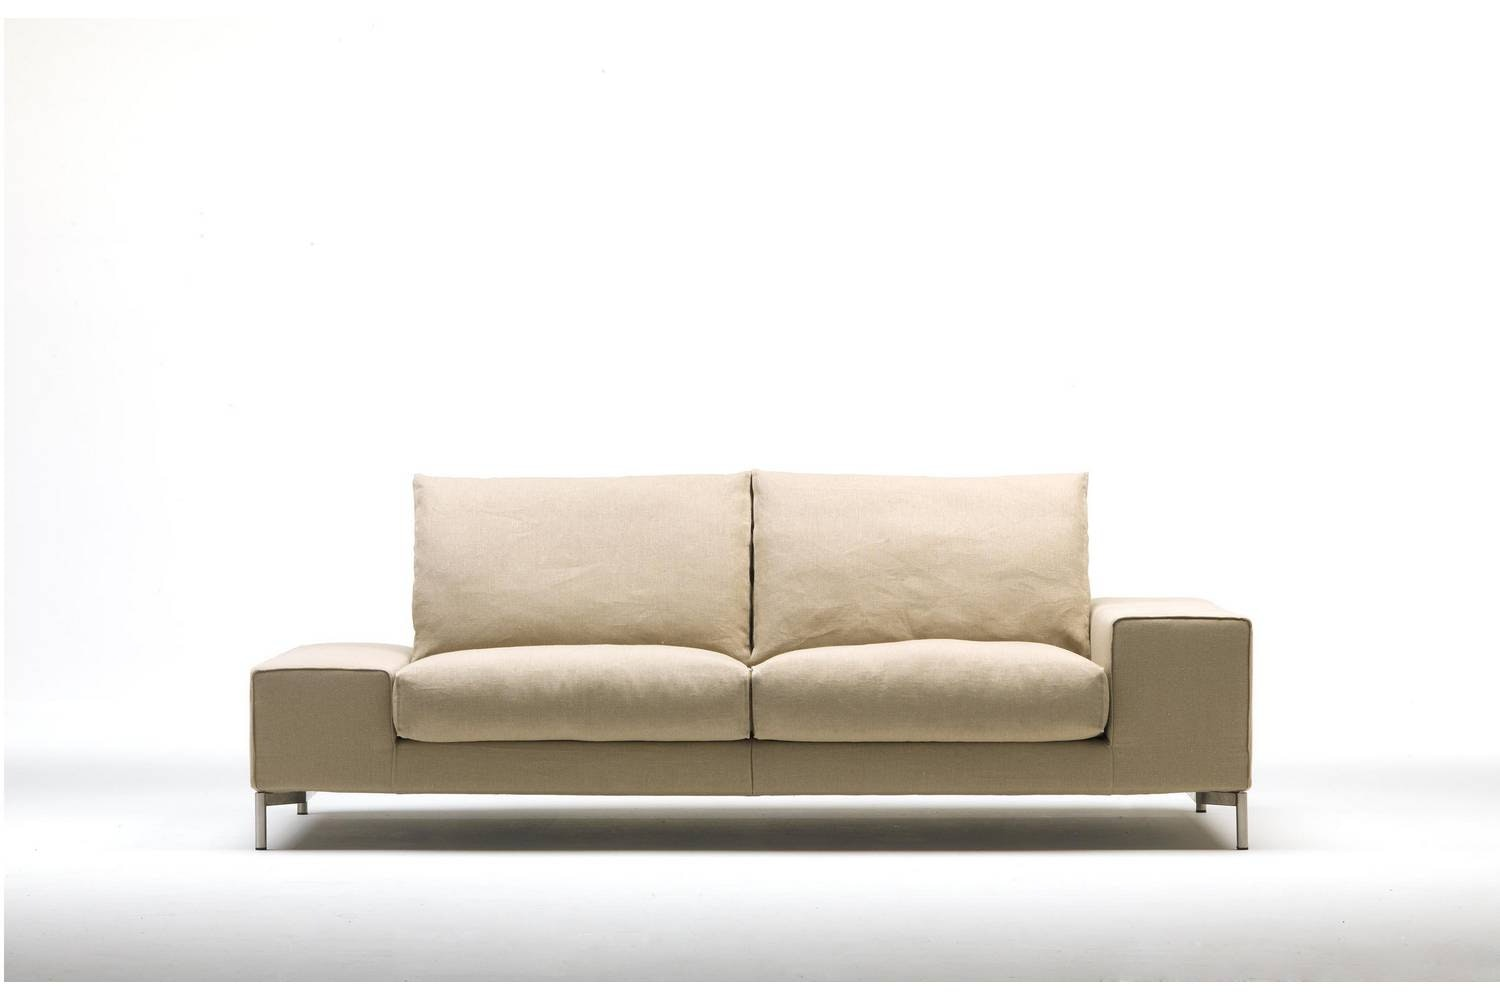 Twice Sofa by Piero Lissoni for Living Divani